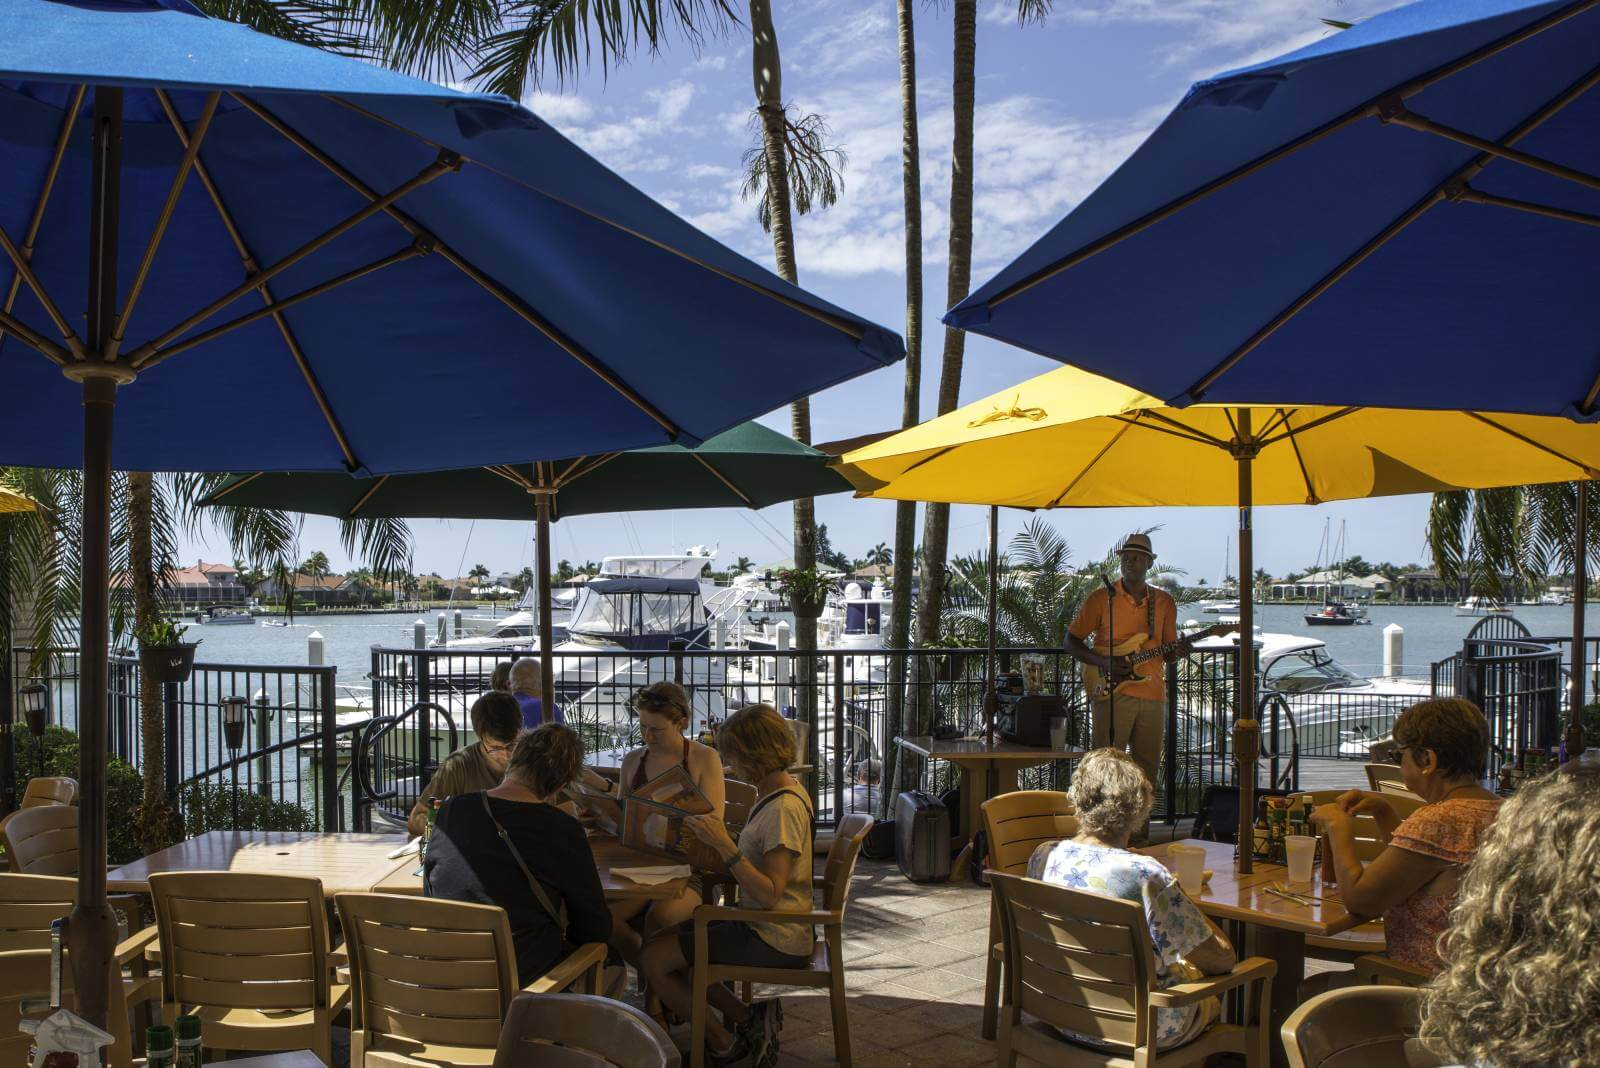 Casual waterfront dining at CJ's on the Bay Marco Island, Florida.